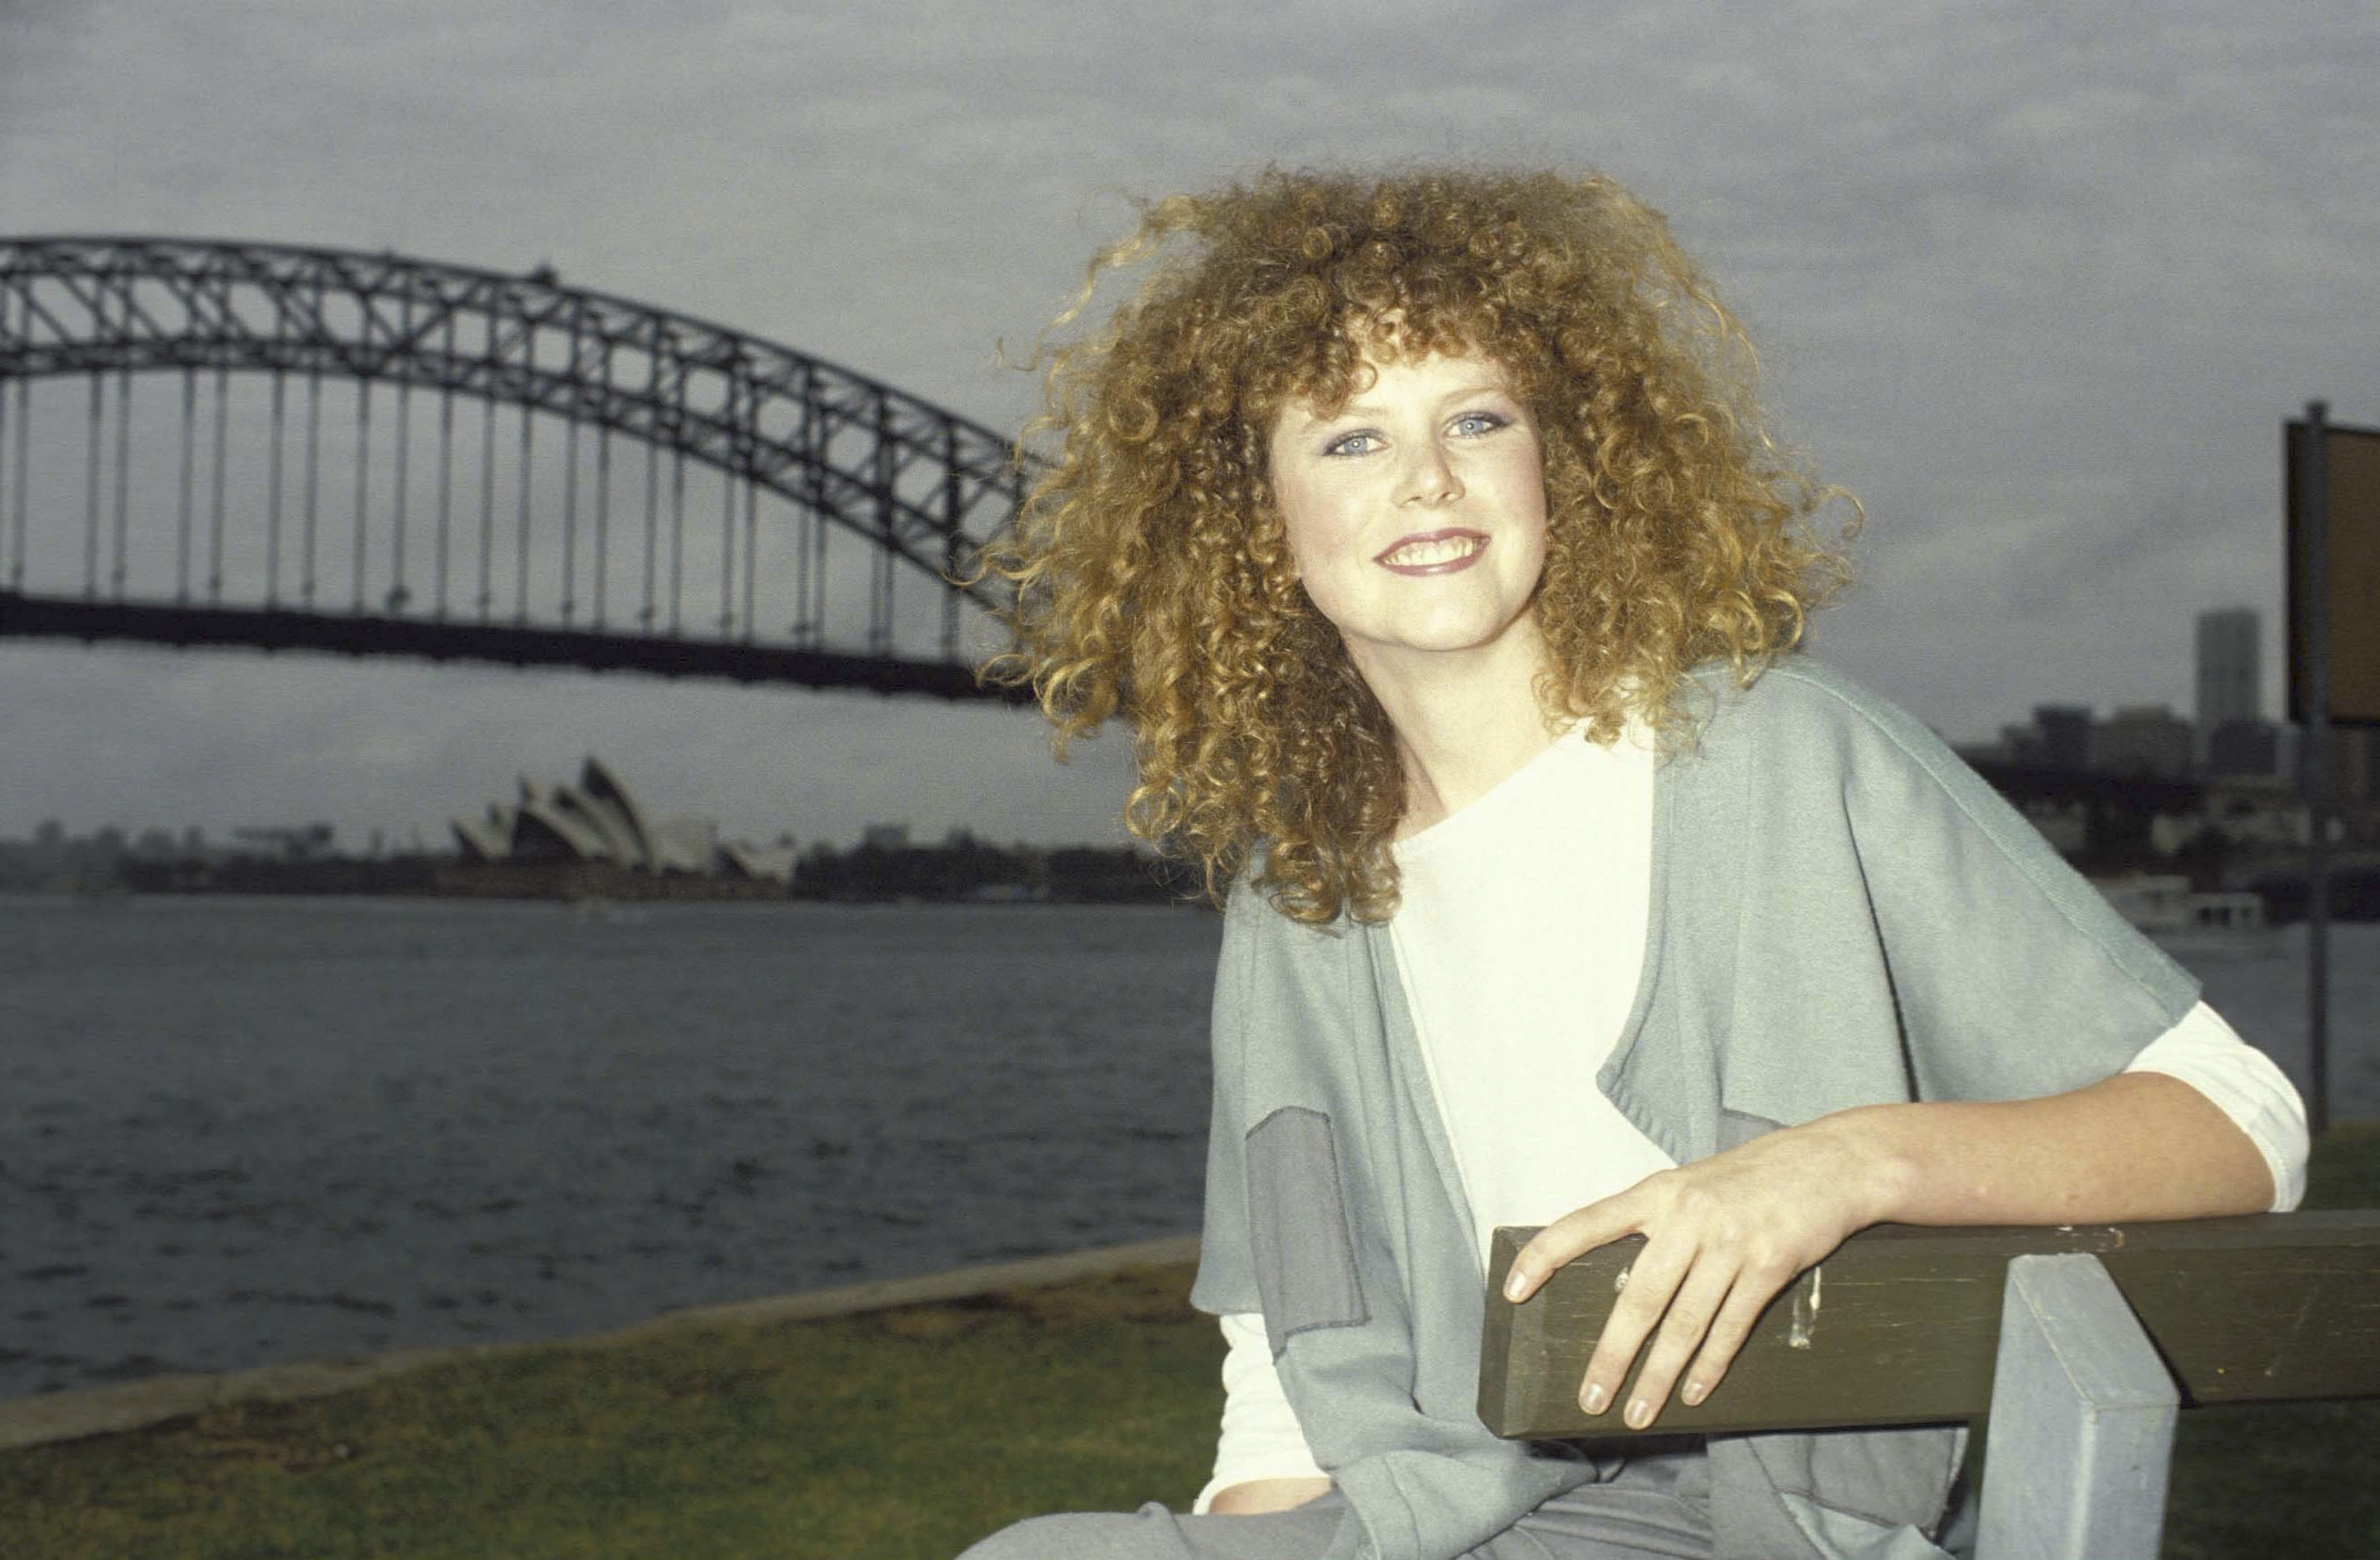 Nicole Kidman Private Photo Shoot In Sydney